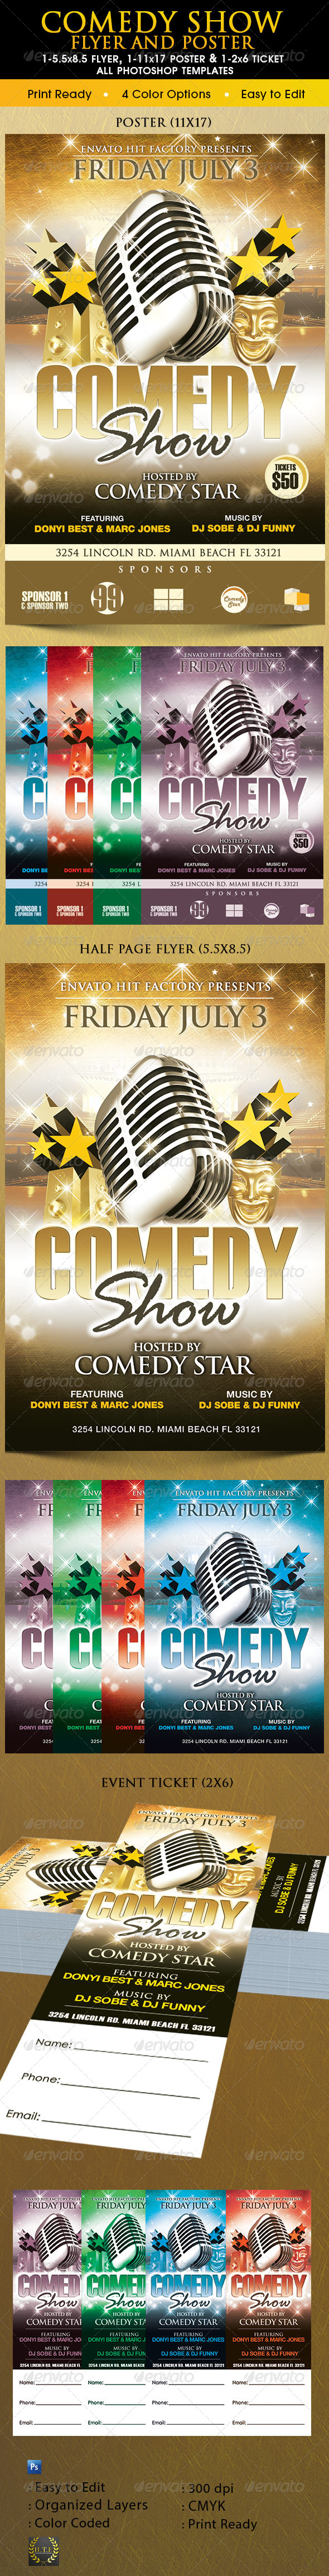 GraphicRiver Comedy Show Poster Flyer & Ticket 8406768